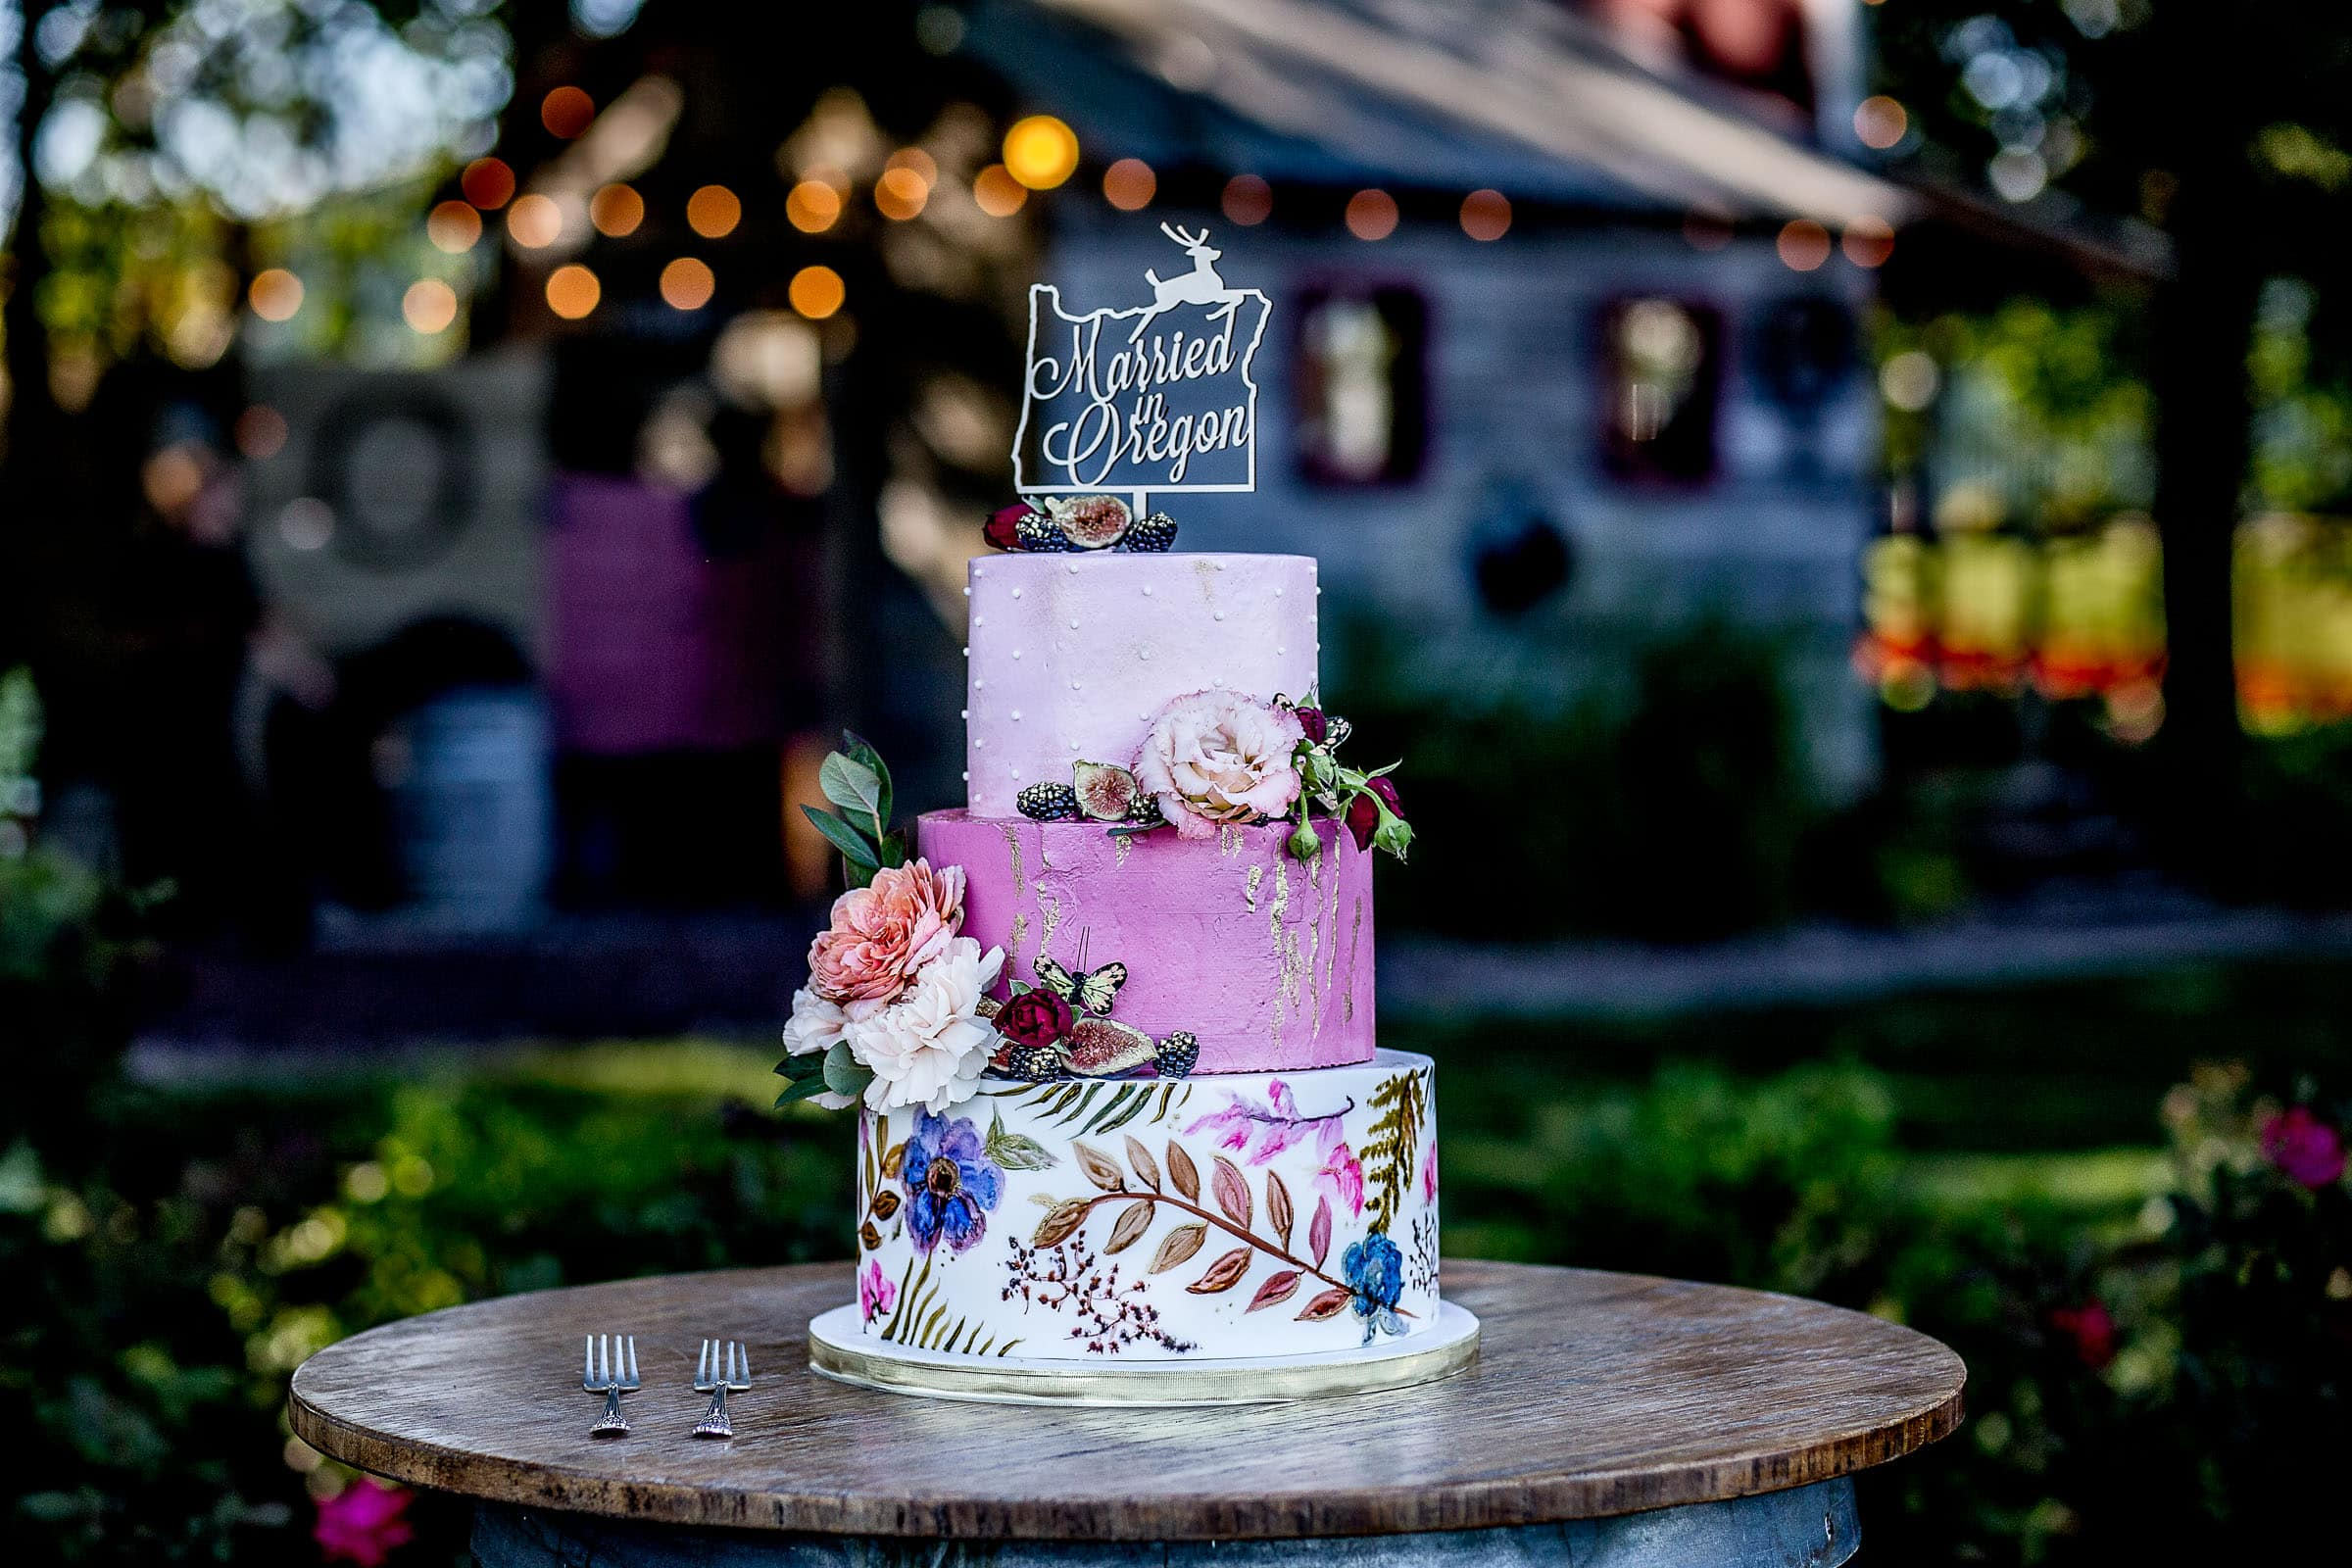 A stunning colorful cake made by Lux Sucre during a Postlewait's Country wedding located in the heart of the Willamette Valley between Portland and Salem near Aurora, Oregon